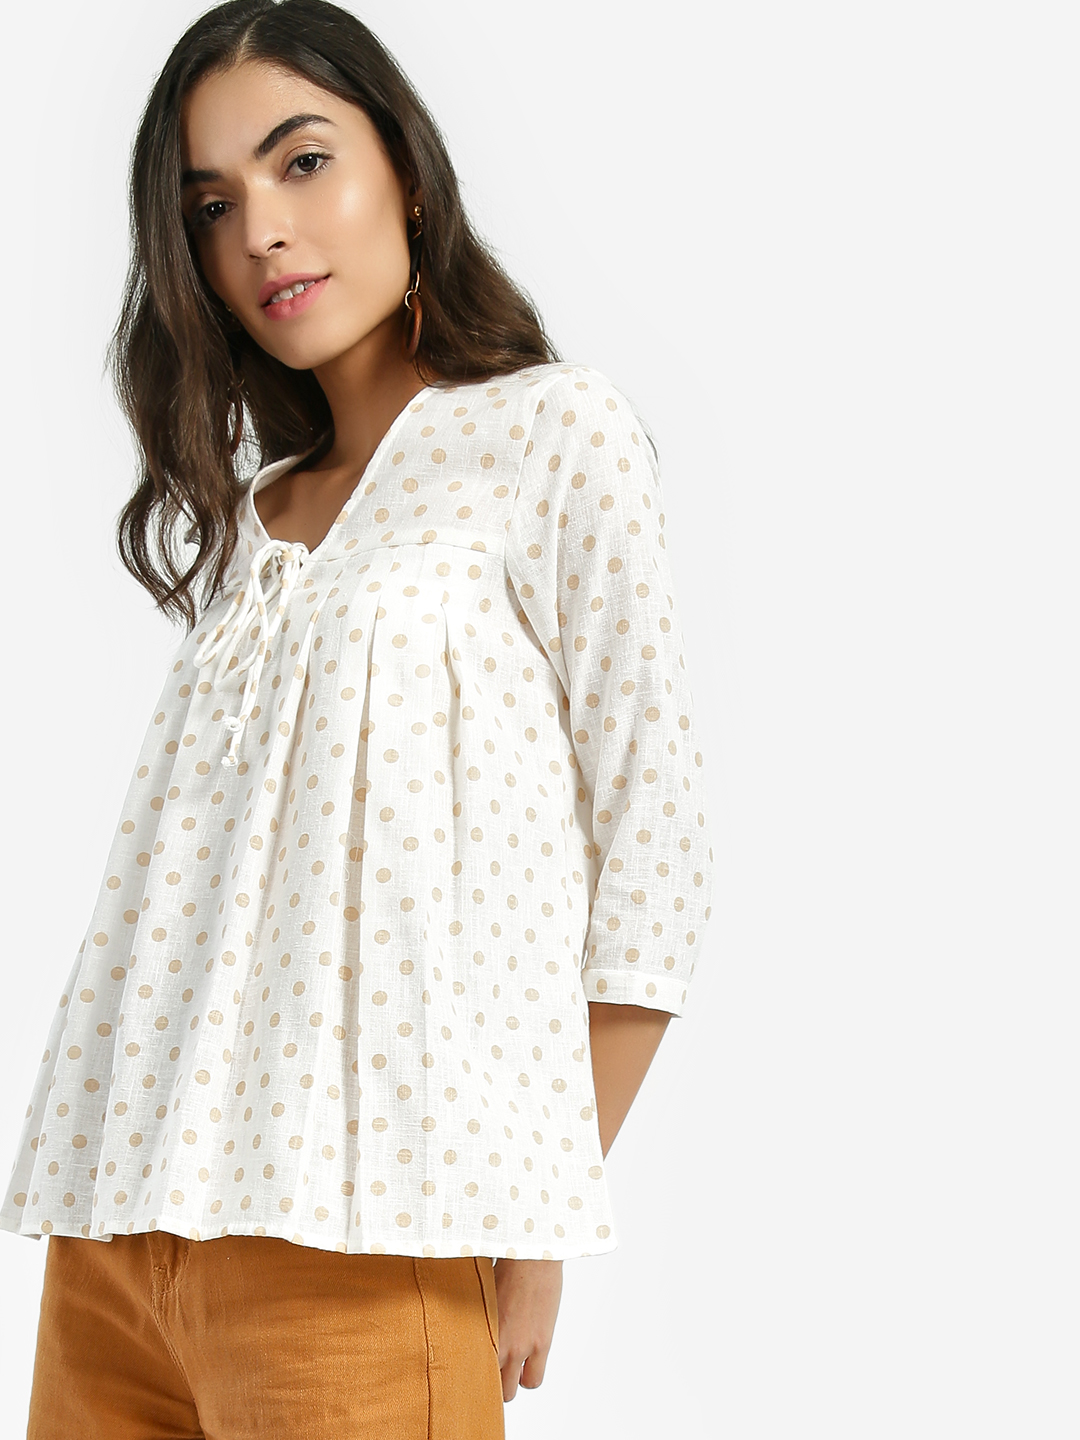 Miaminx White Polka Dot Print Pleated Top 1